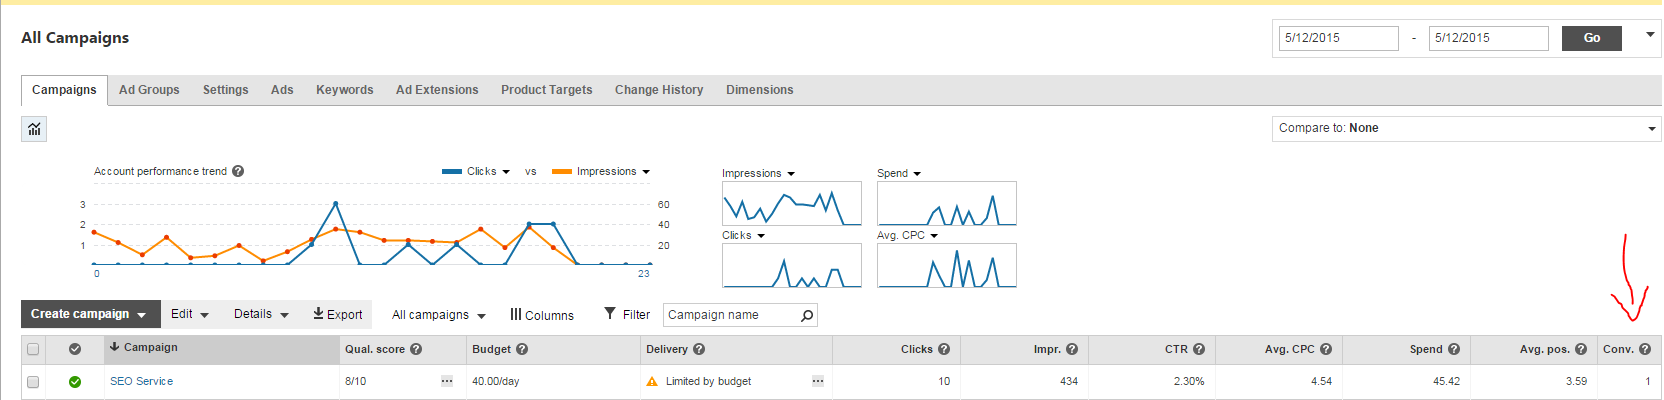 Bing Ads Conversion in the Dashboard